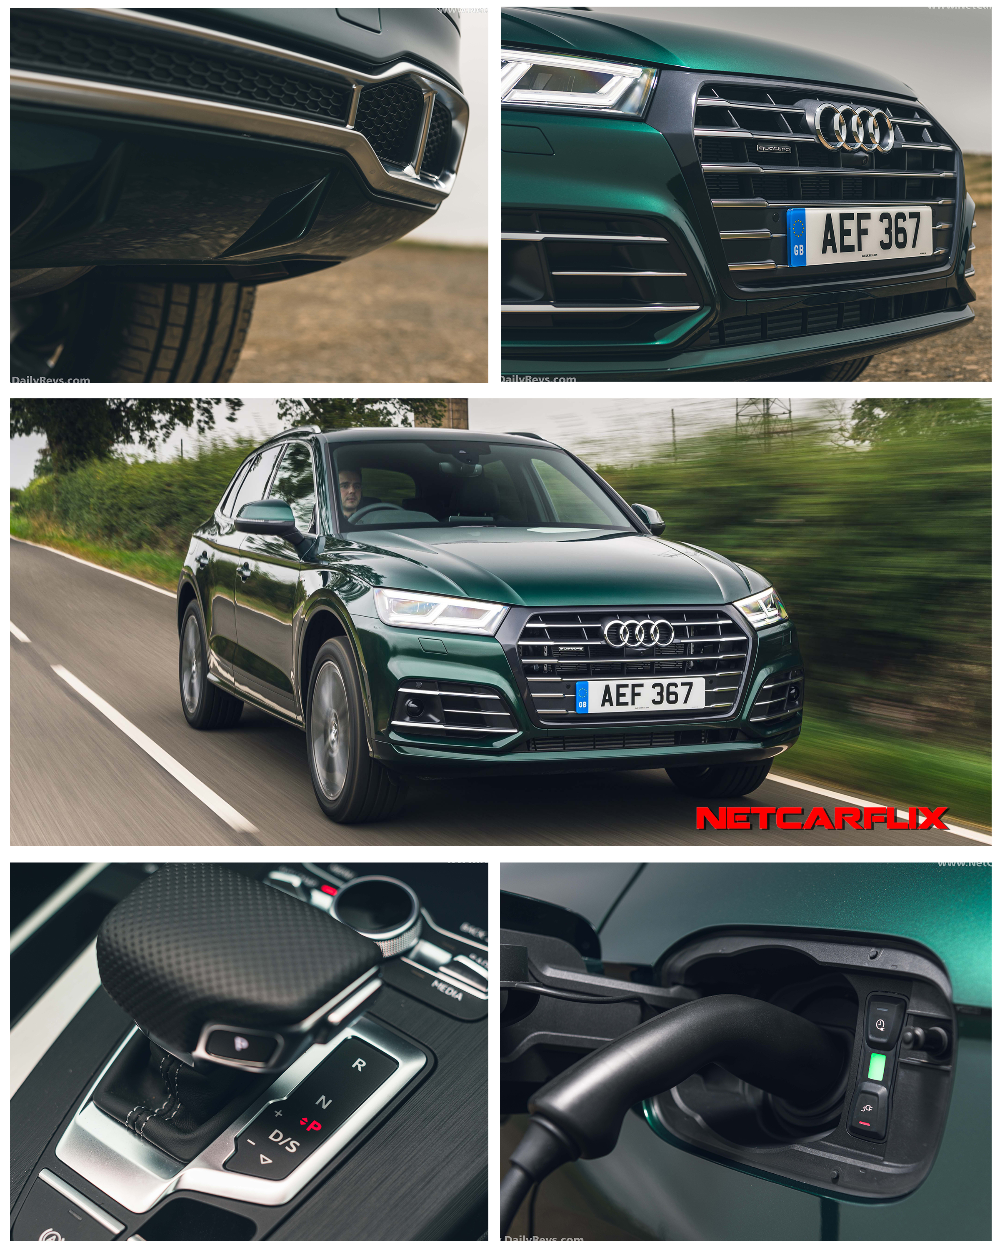 2020 Audi Q5 Tfsi E Quattro Hq Pictures Specs Information And Videos Dailyrevs Audi Audi Q5 Sport Seats